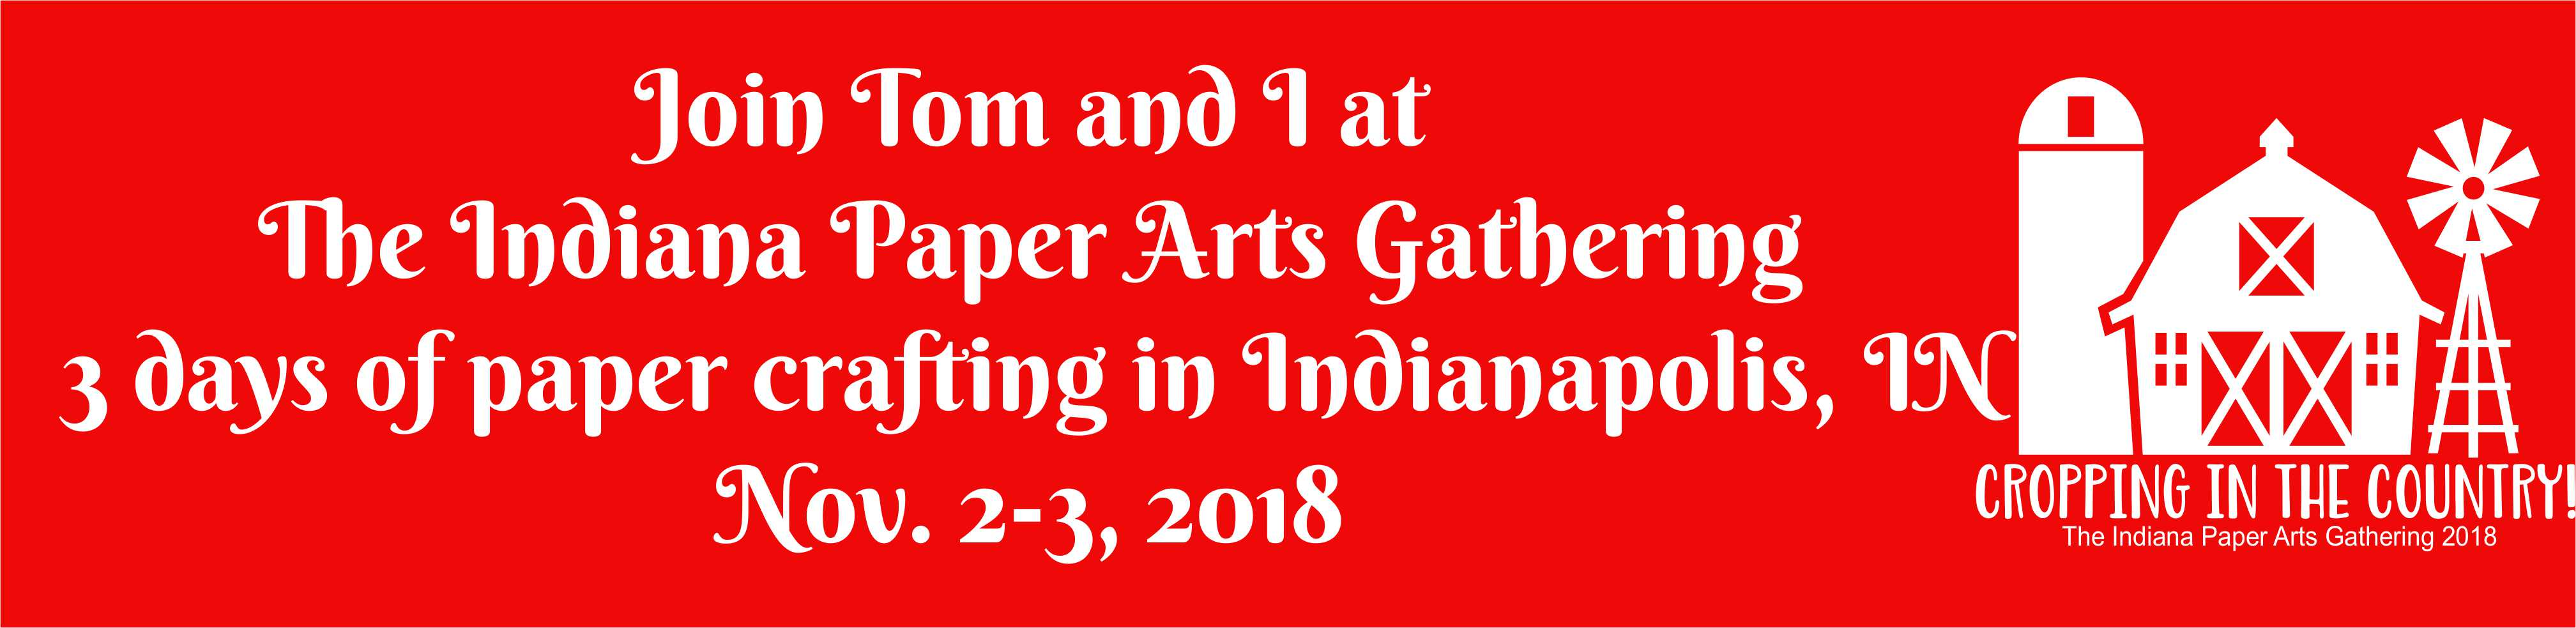 The Indiana Paper Arts Gathering